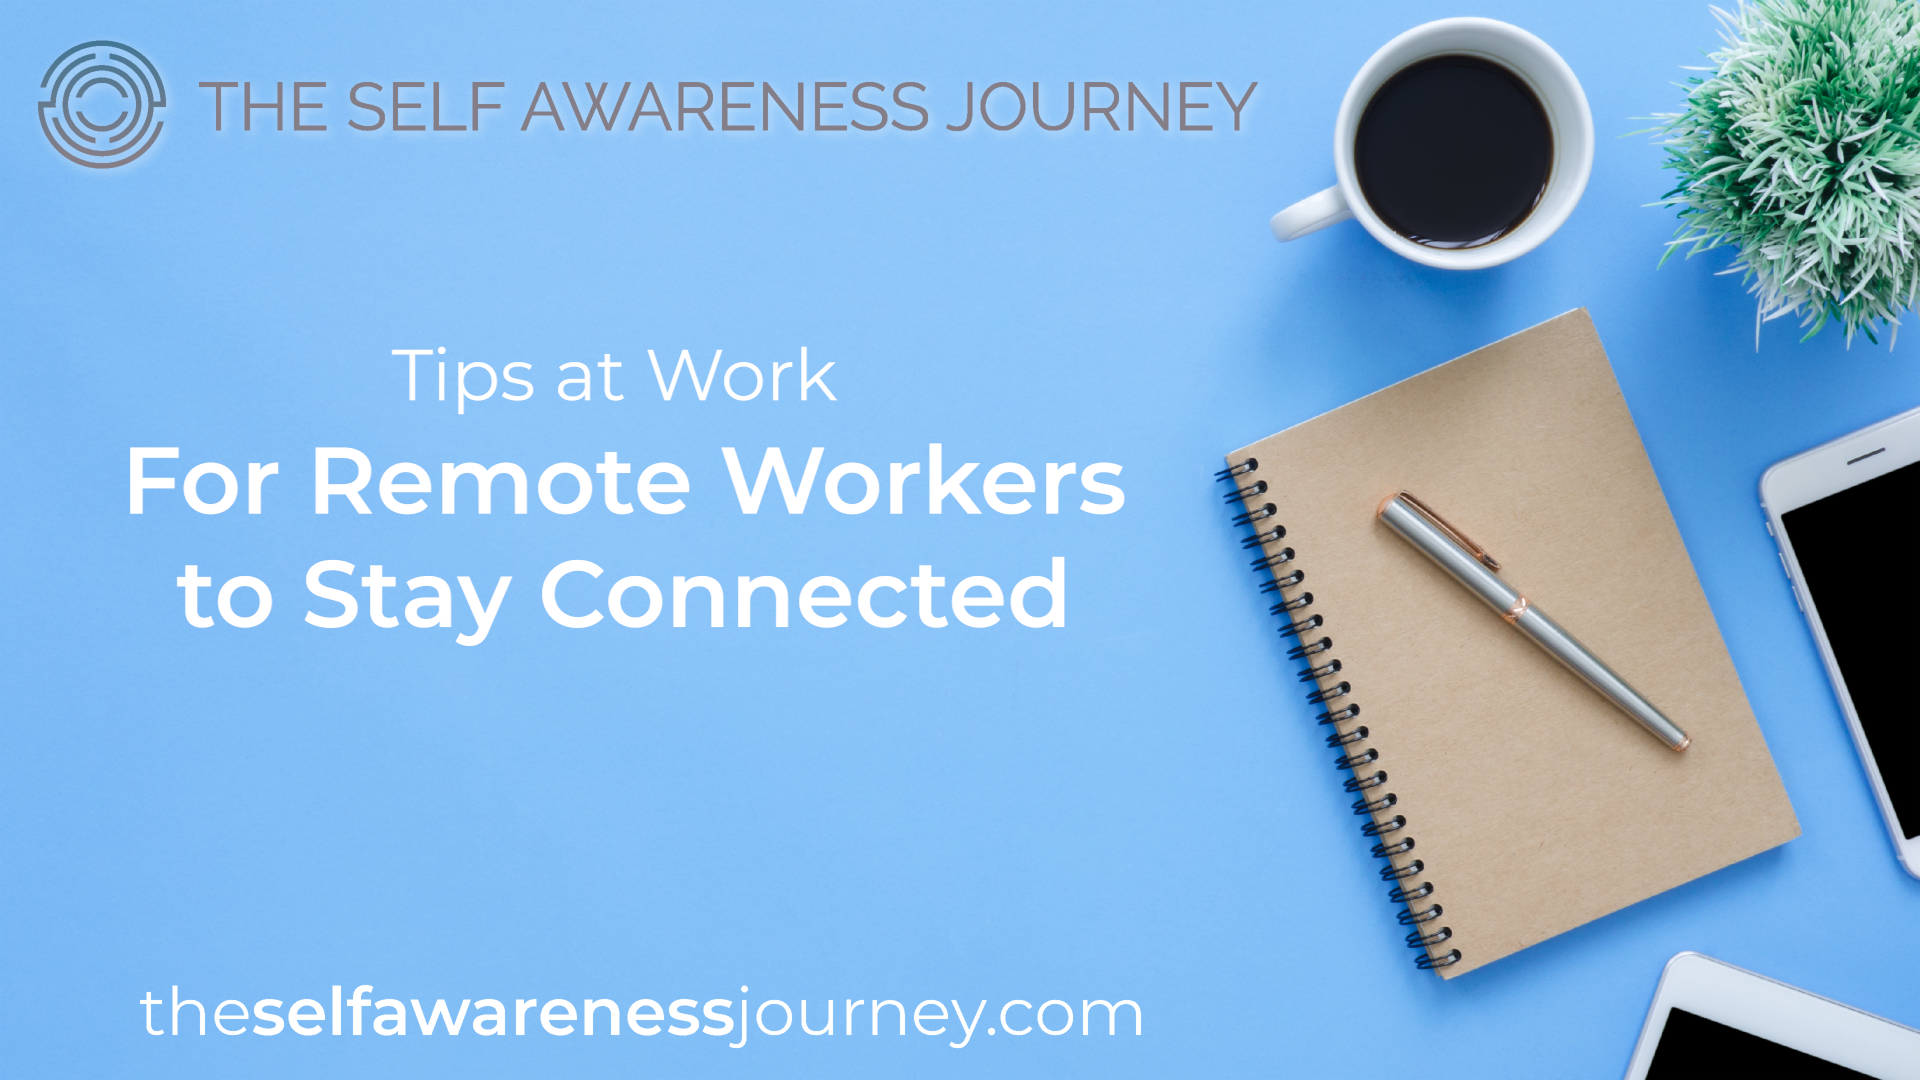 For Remote Workers to Stay Connected